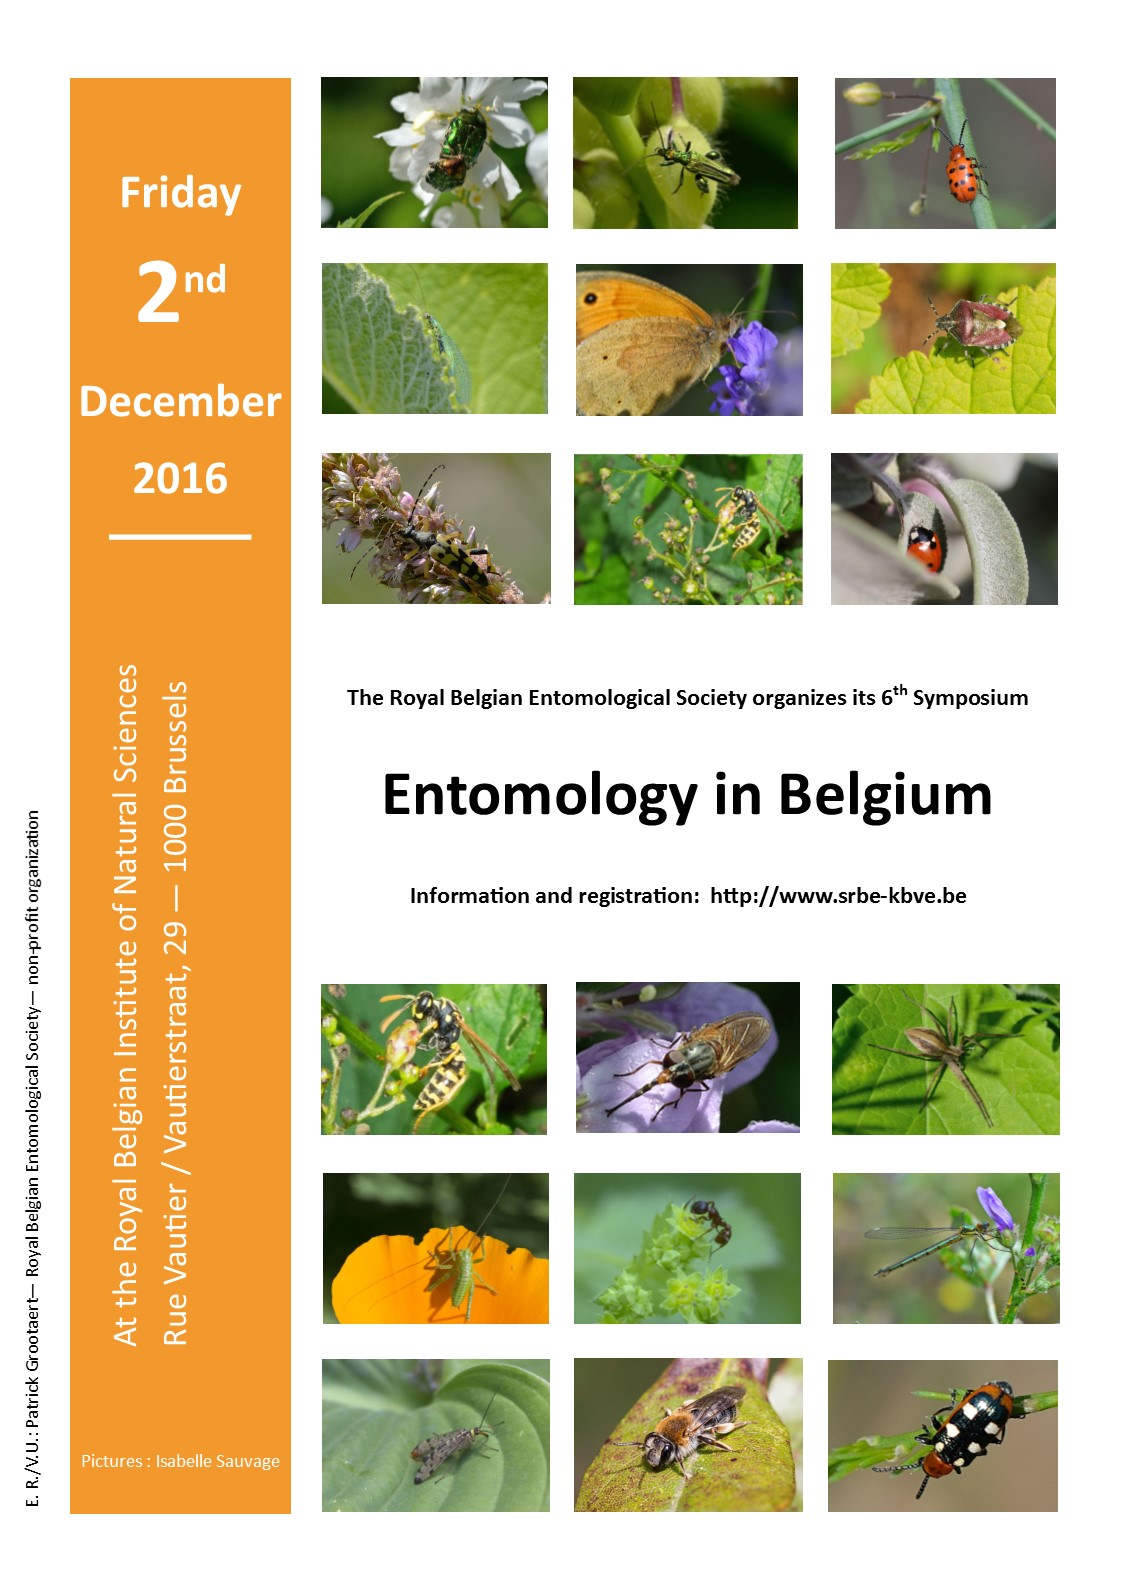 Entomology in Belgium 2016